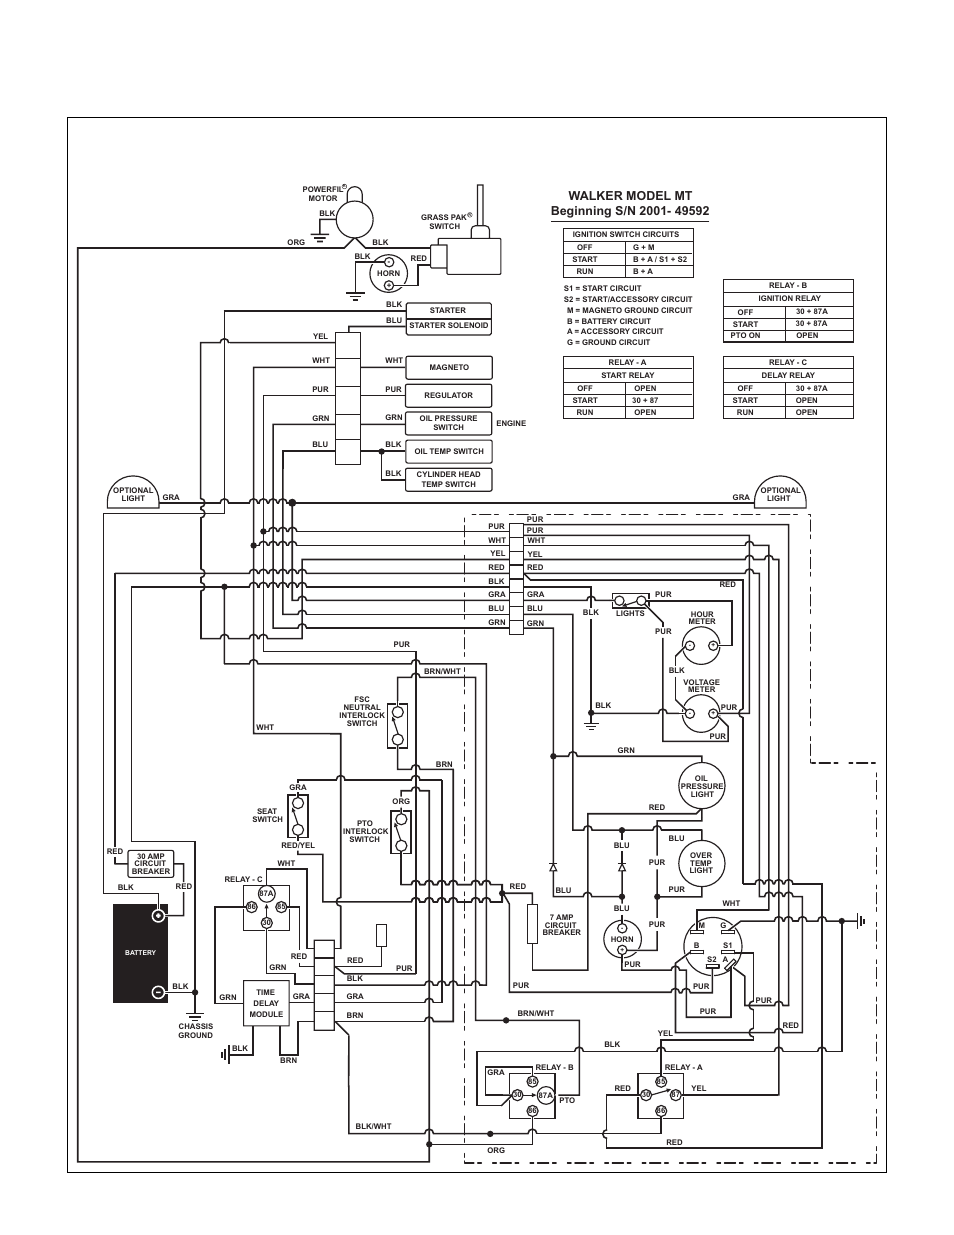 maintenance byp switch wiring diagram    wiring       diagram    model mt     maintenance    instructions     wiring       diagram    model mt     maintenance    instructions